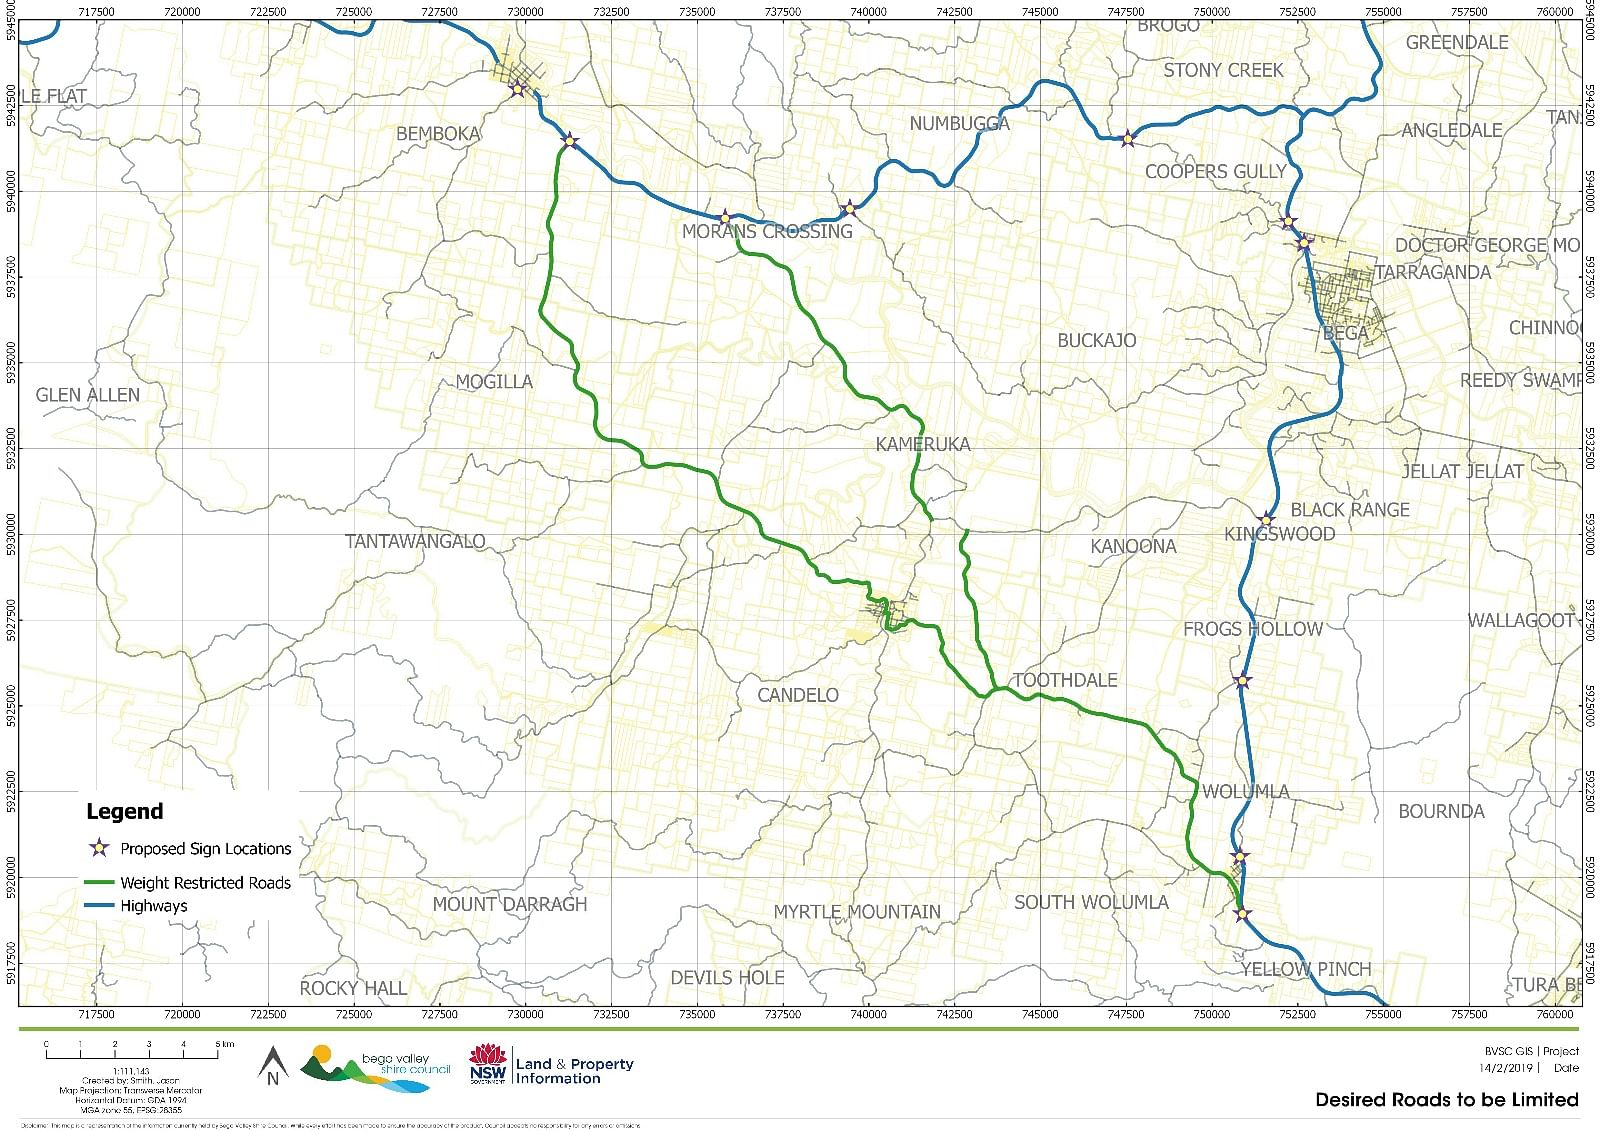 The map shows the roads that were previously the subject of 15-tonne load limits marked in green.